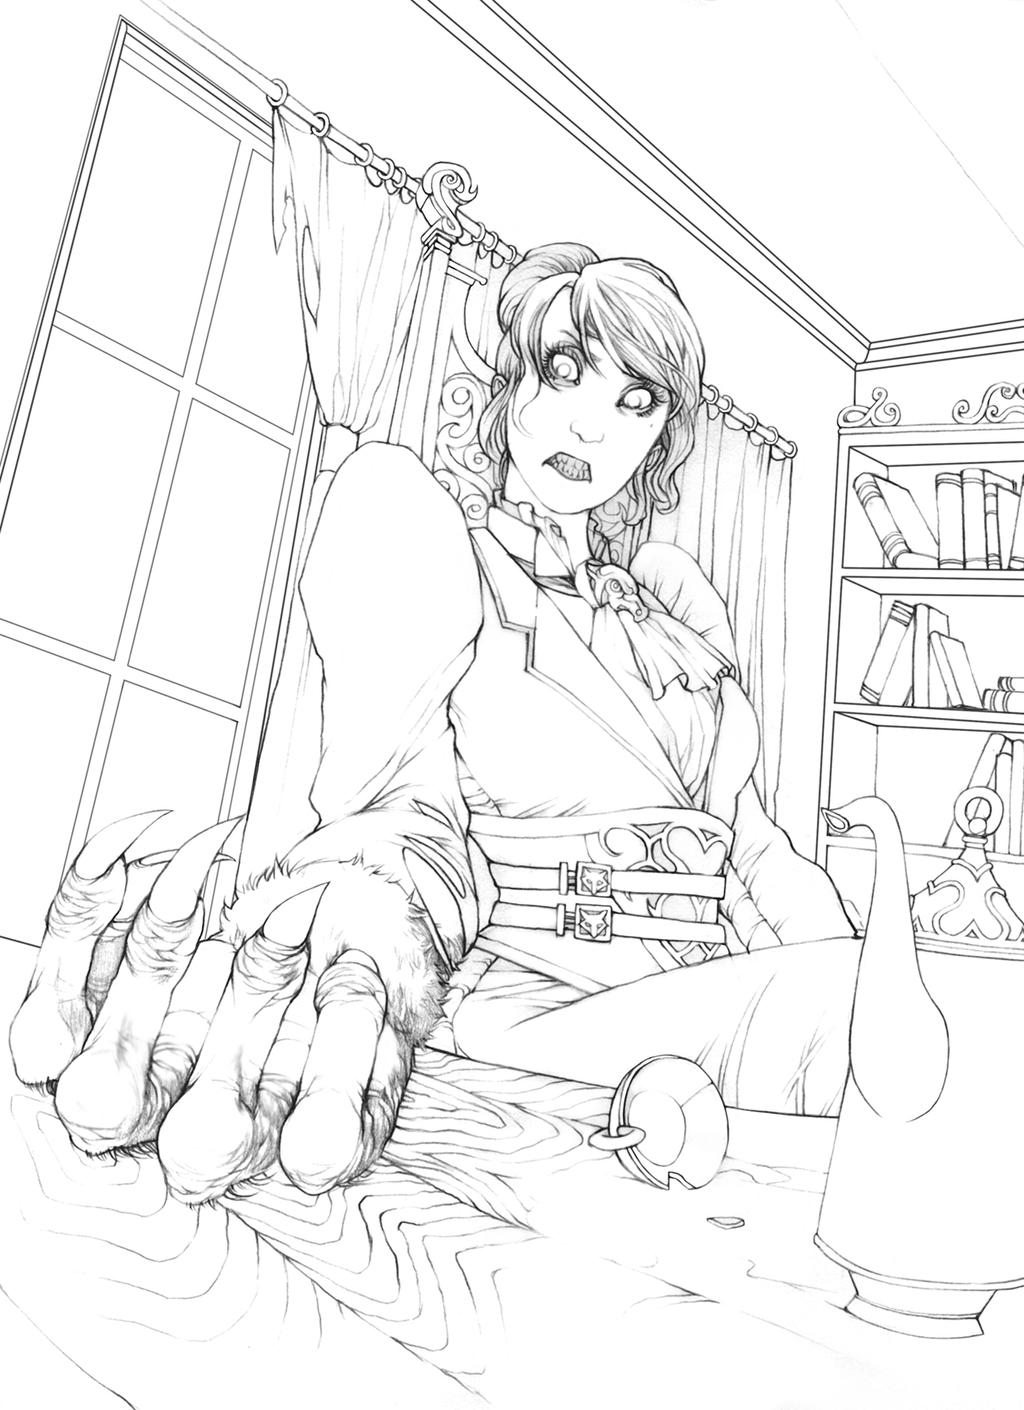 Baroness of the Wolf - pencils by Gido